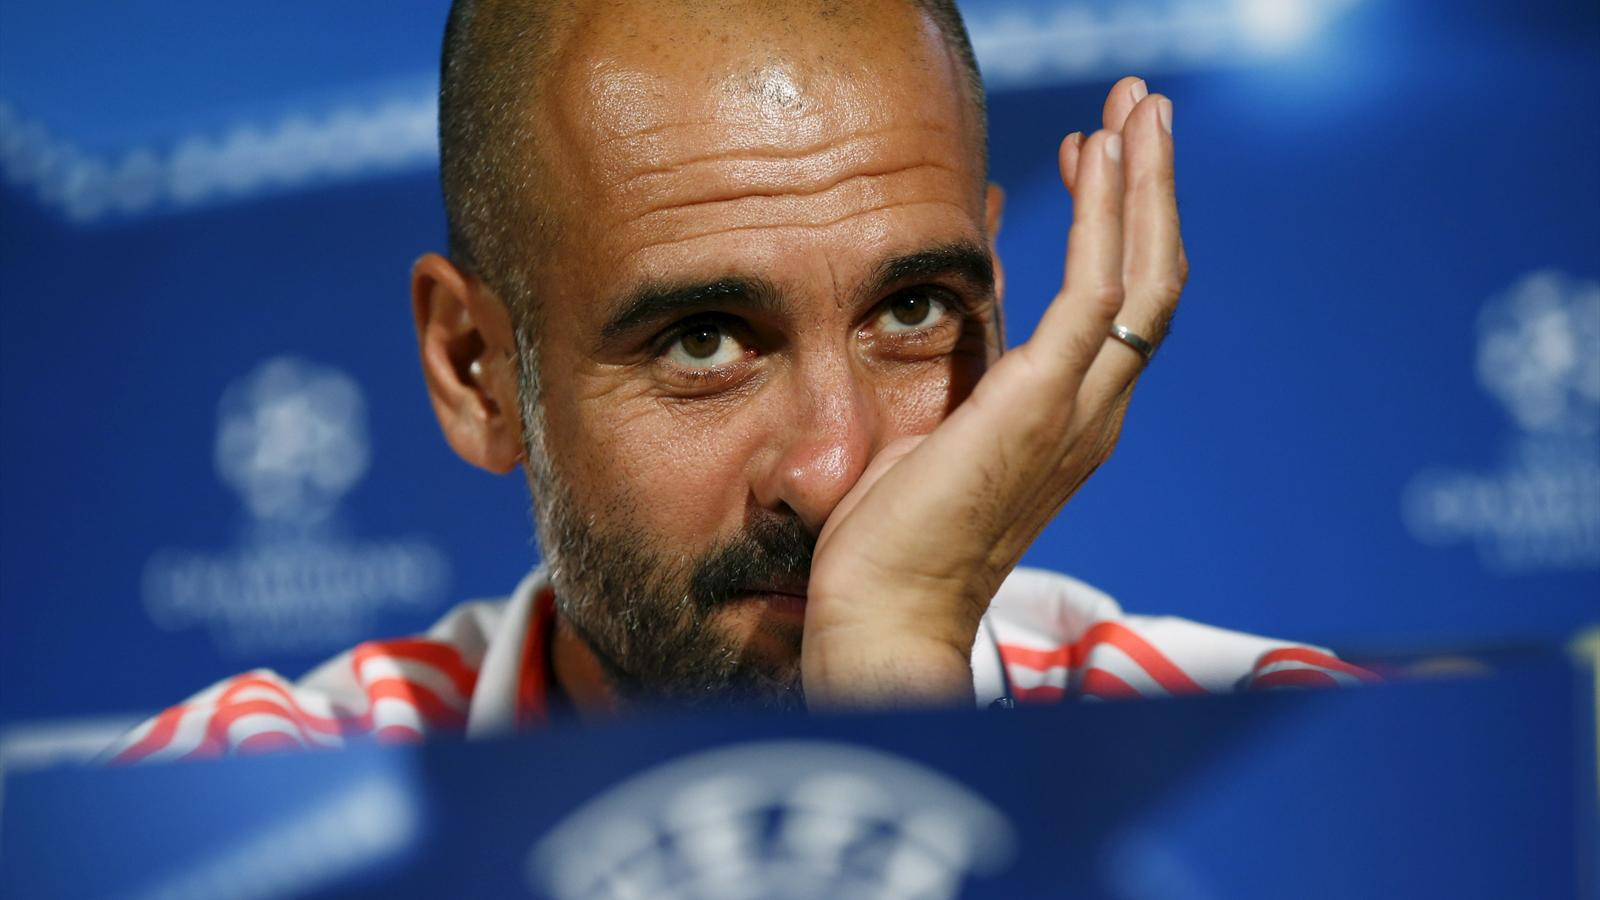 Bayern Munich's coach Pep Guardiola listens to a question during a news conference at the team's hotel ahead of their Champions League group F soccer match against Olympiacos in Athens